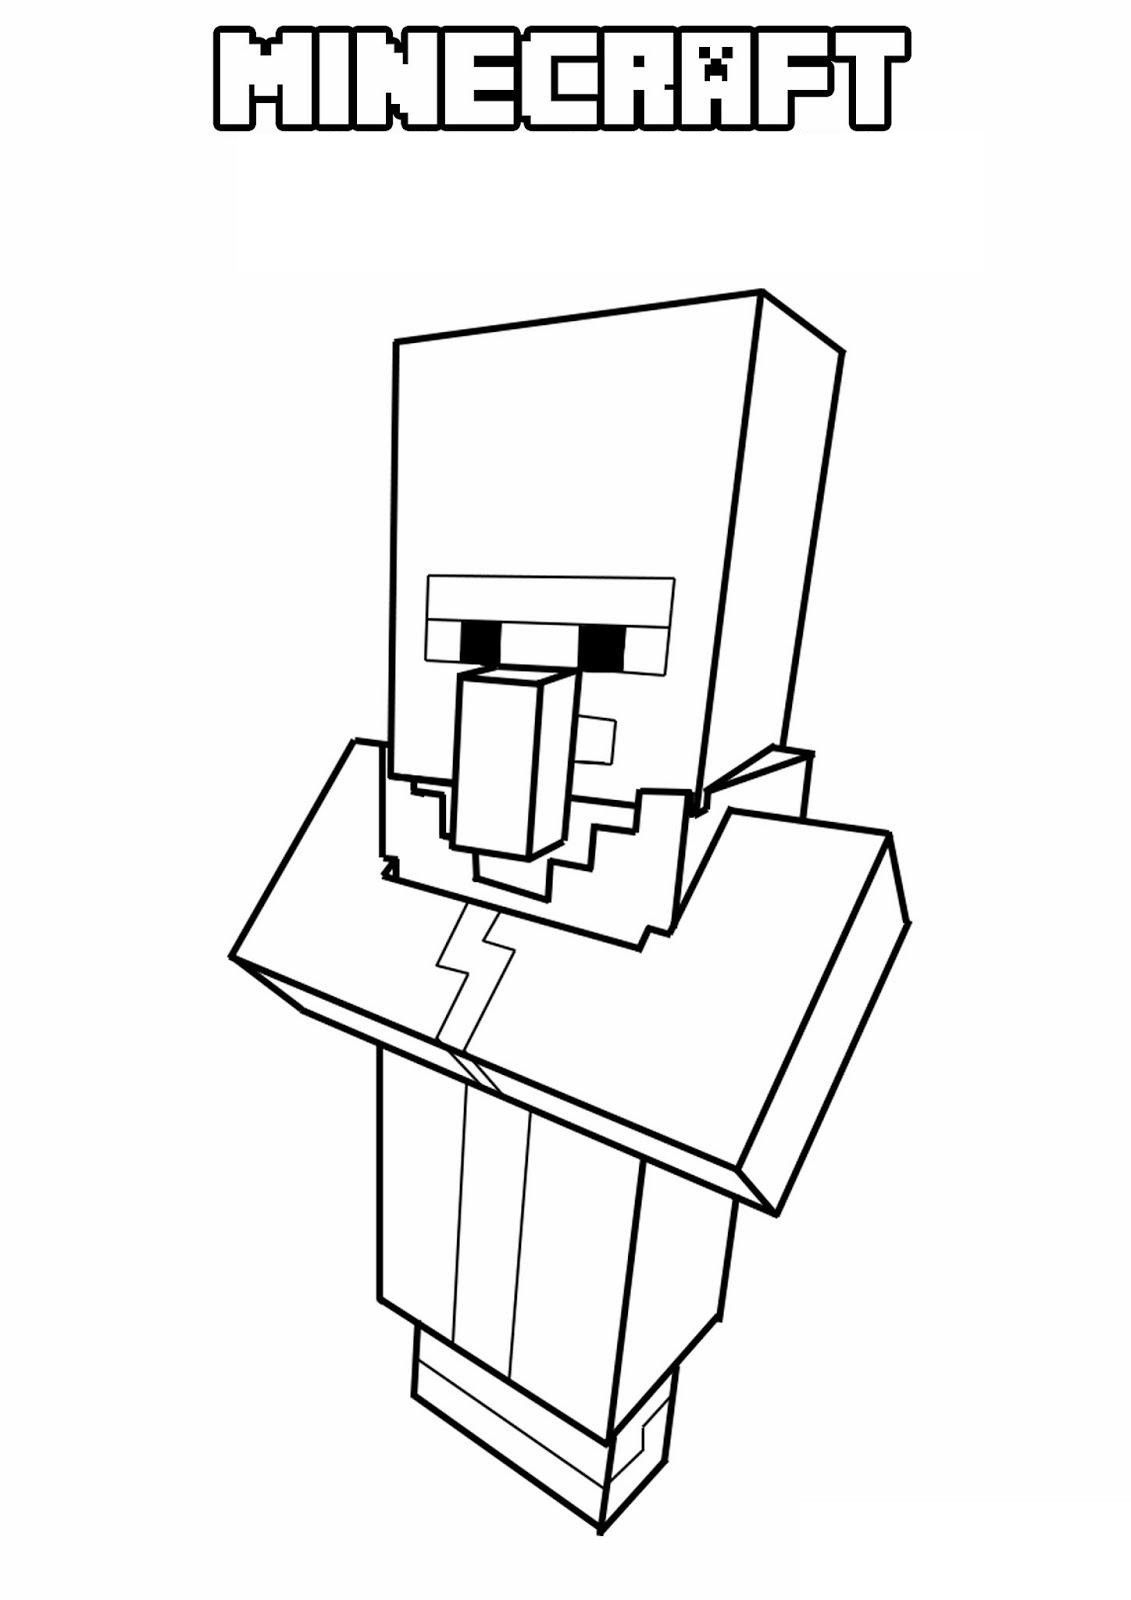 Free Printable Minecraft Coloring Page Youngandtae Com Minecraft Coloring Pages Easy Coloring Pages Coloring Pages